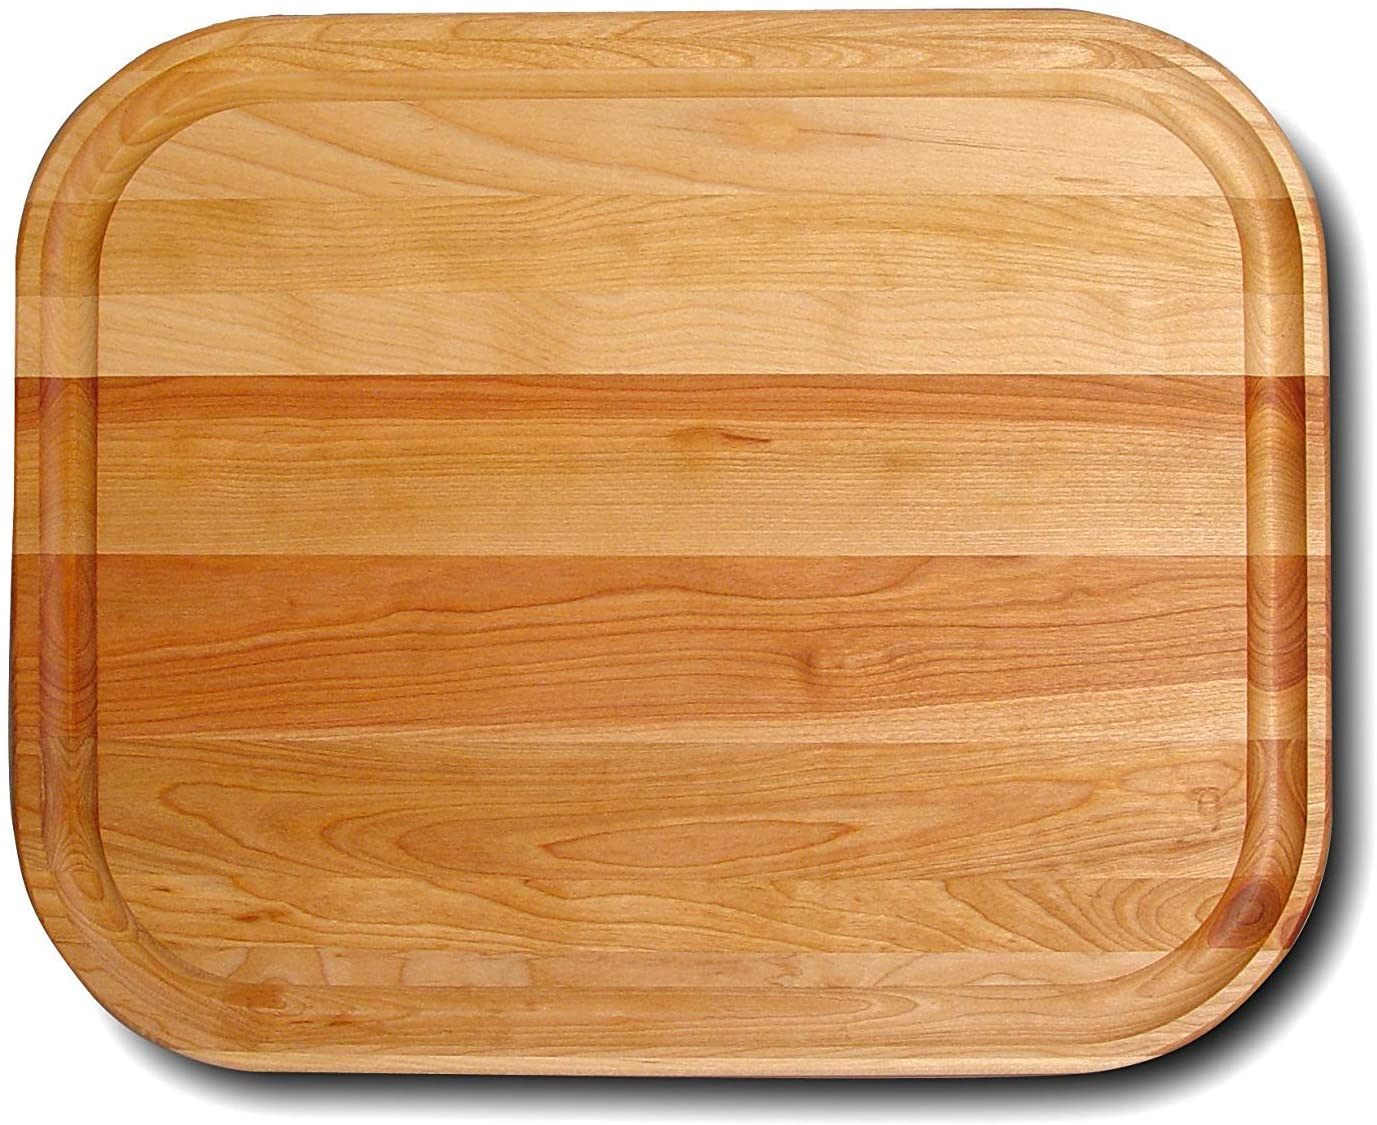 Catskill Craftsmen 13131 Catskill Crafstmen Plain Barbecue, Reversible Cutting Board, One Size, Wood